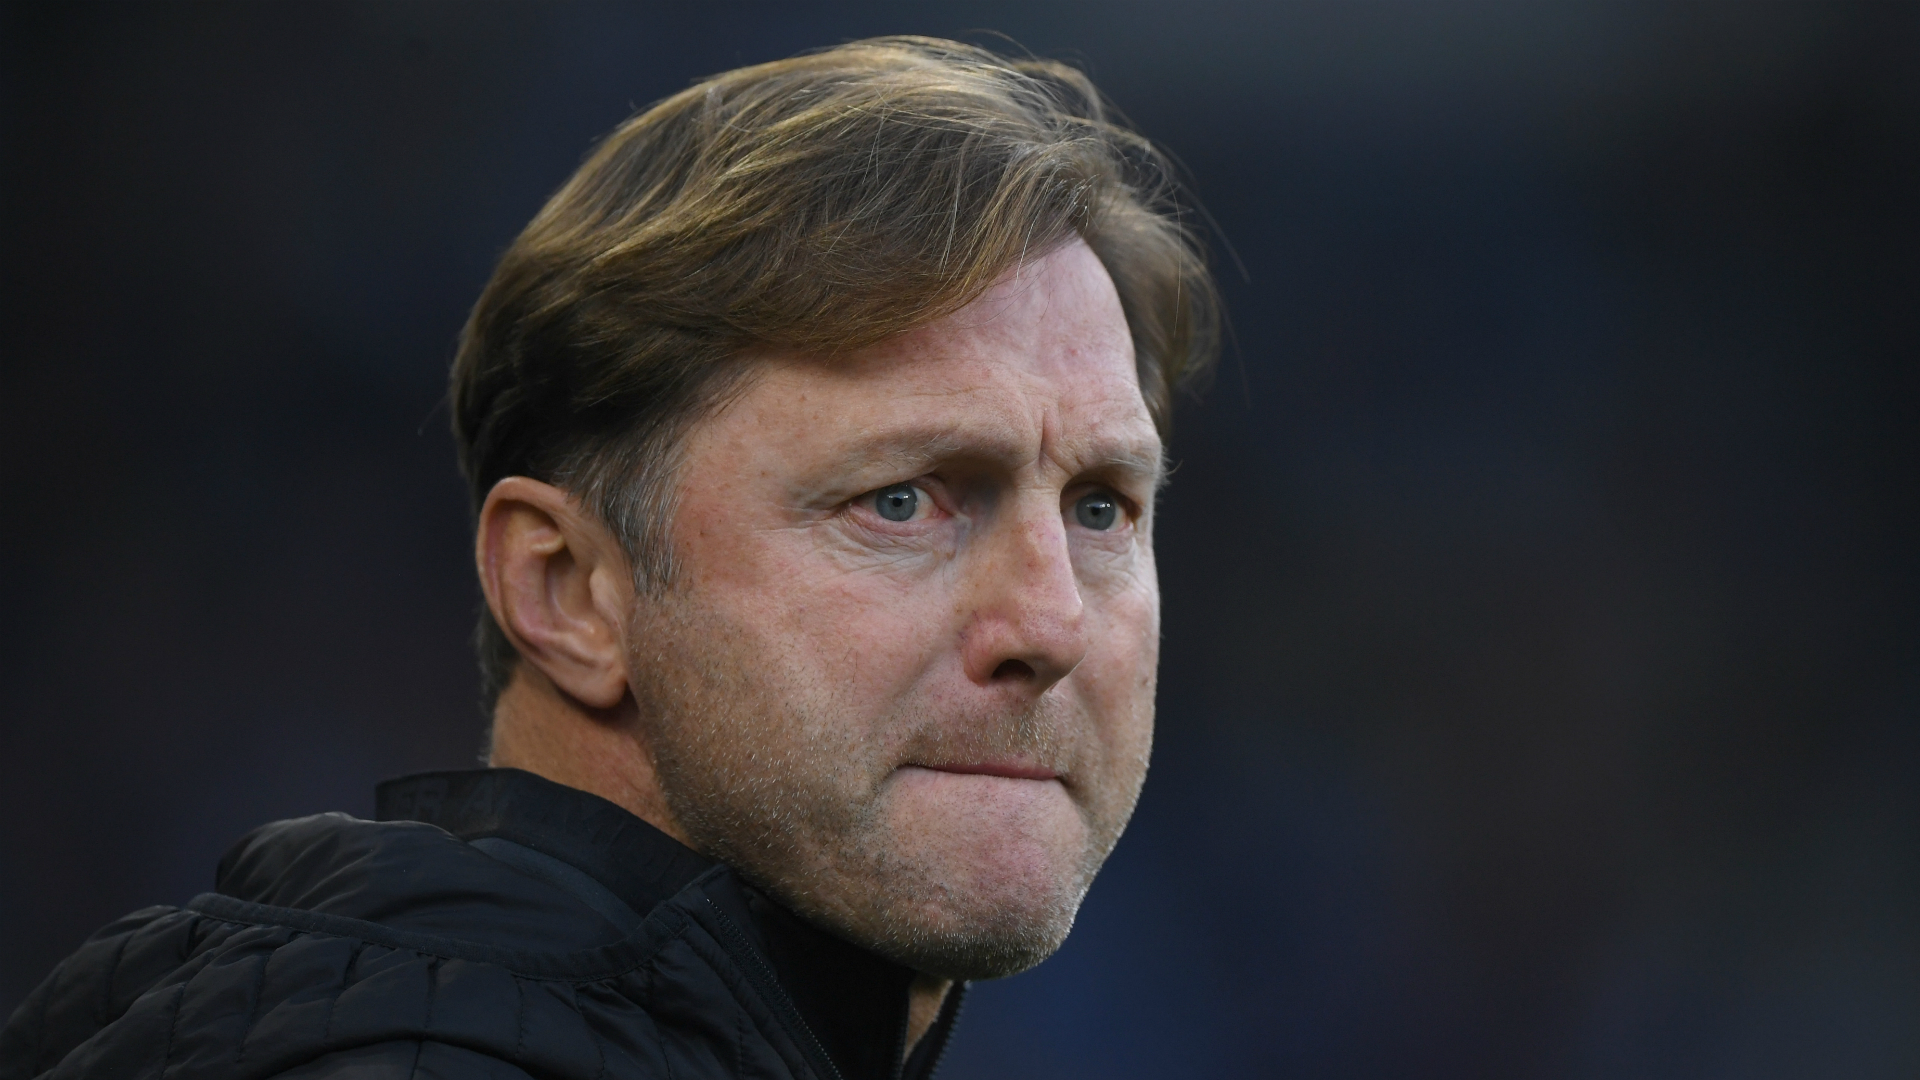 Cardiff City 1 Southampton 0: Vestergaard lapse condemns Hasenhuttl to losing start